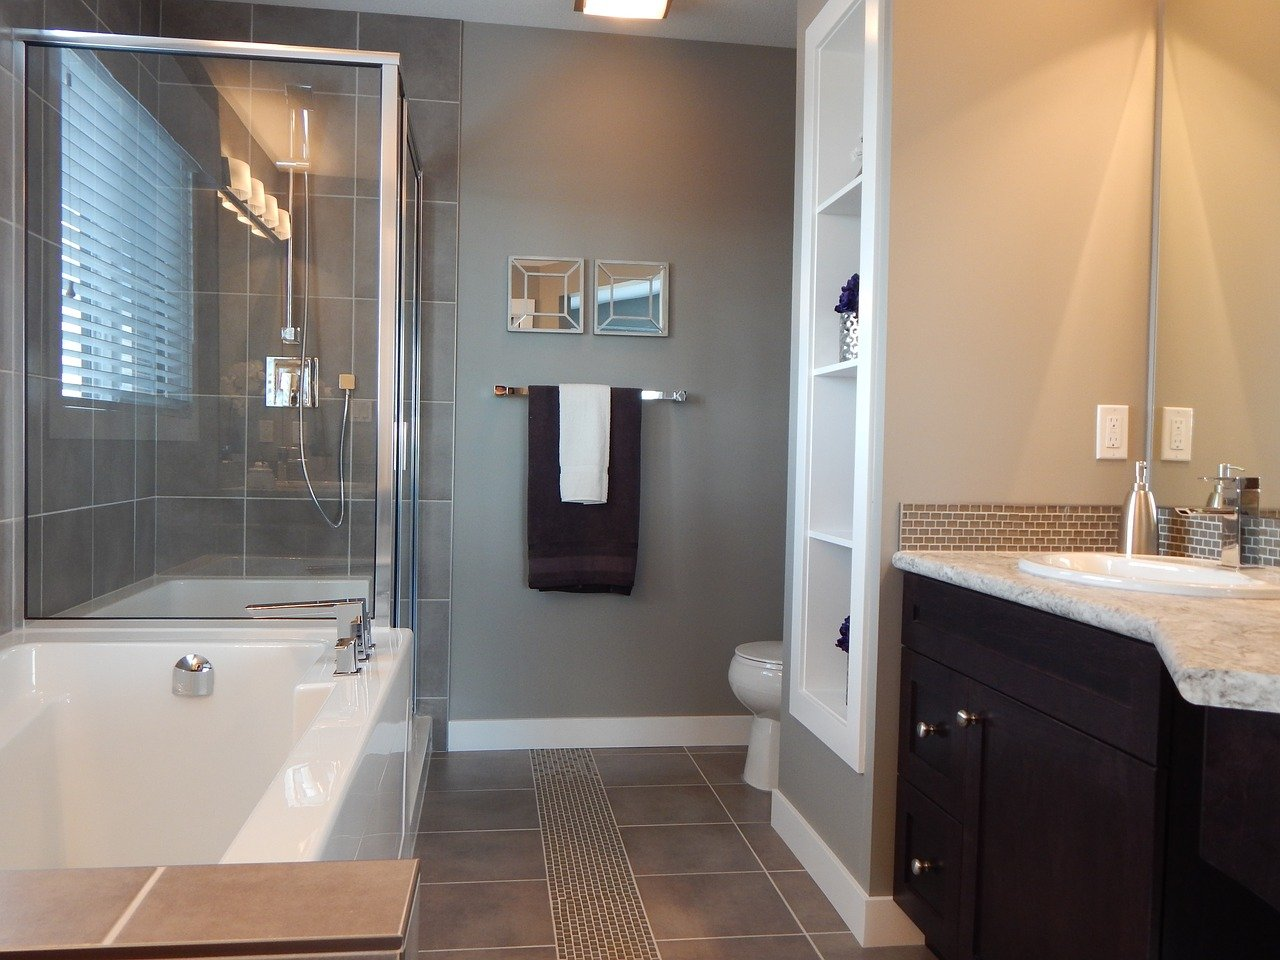 Wear and tear can make the property less valuable. So when you decide it's time to update your bathroom, your property gains value and usability.